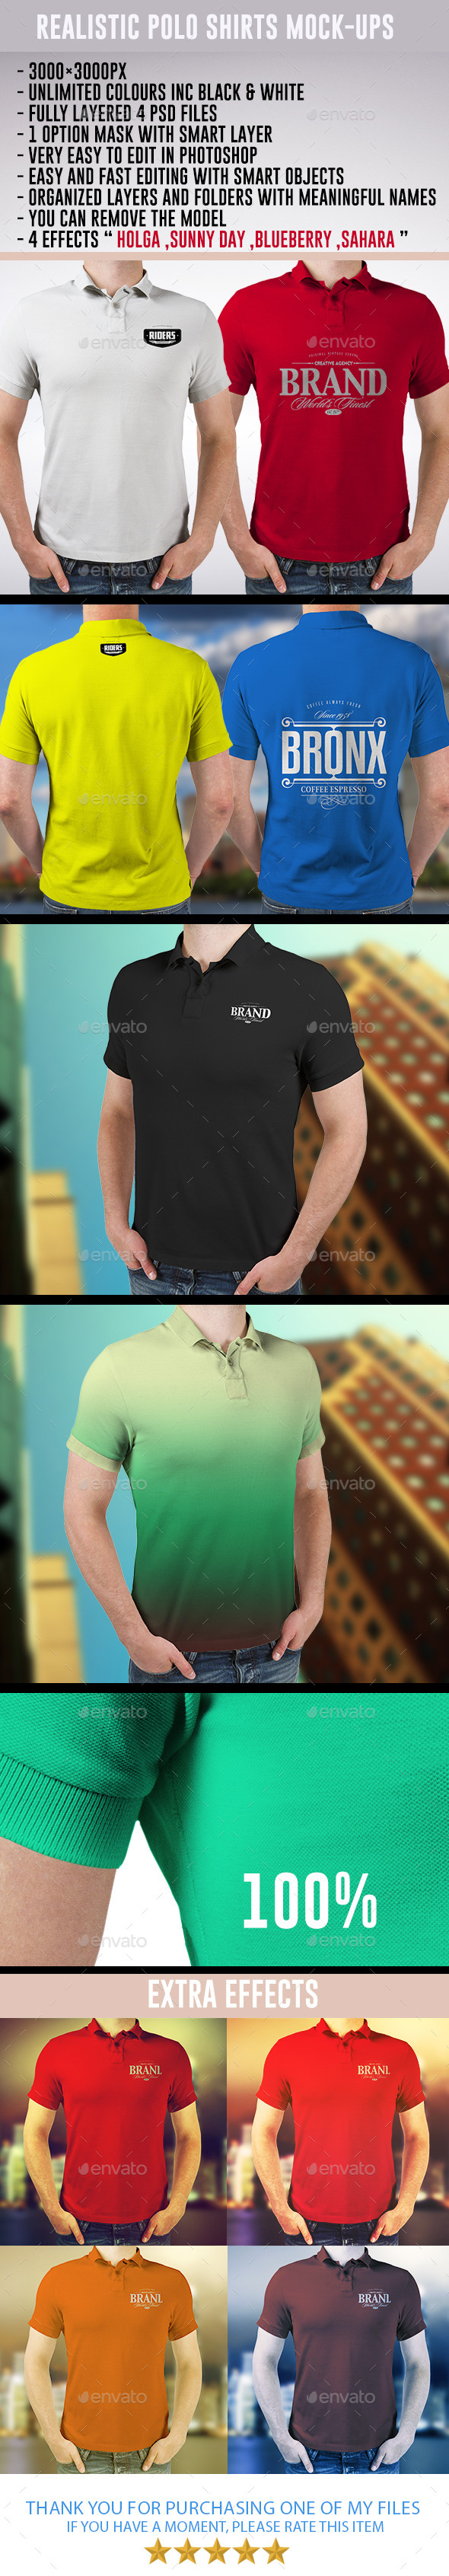 GraphicRiver Realistic Polo Shirts Mock-ups 8832645